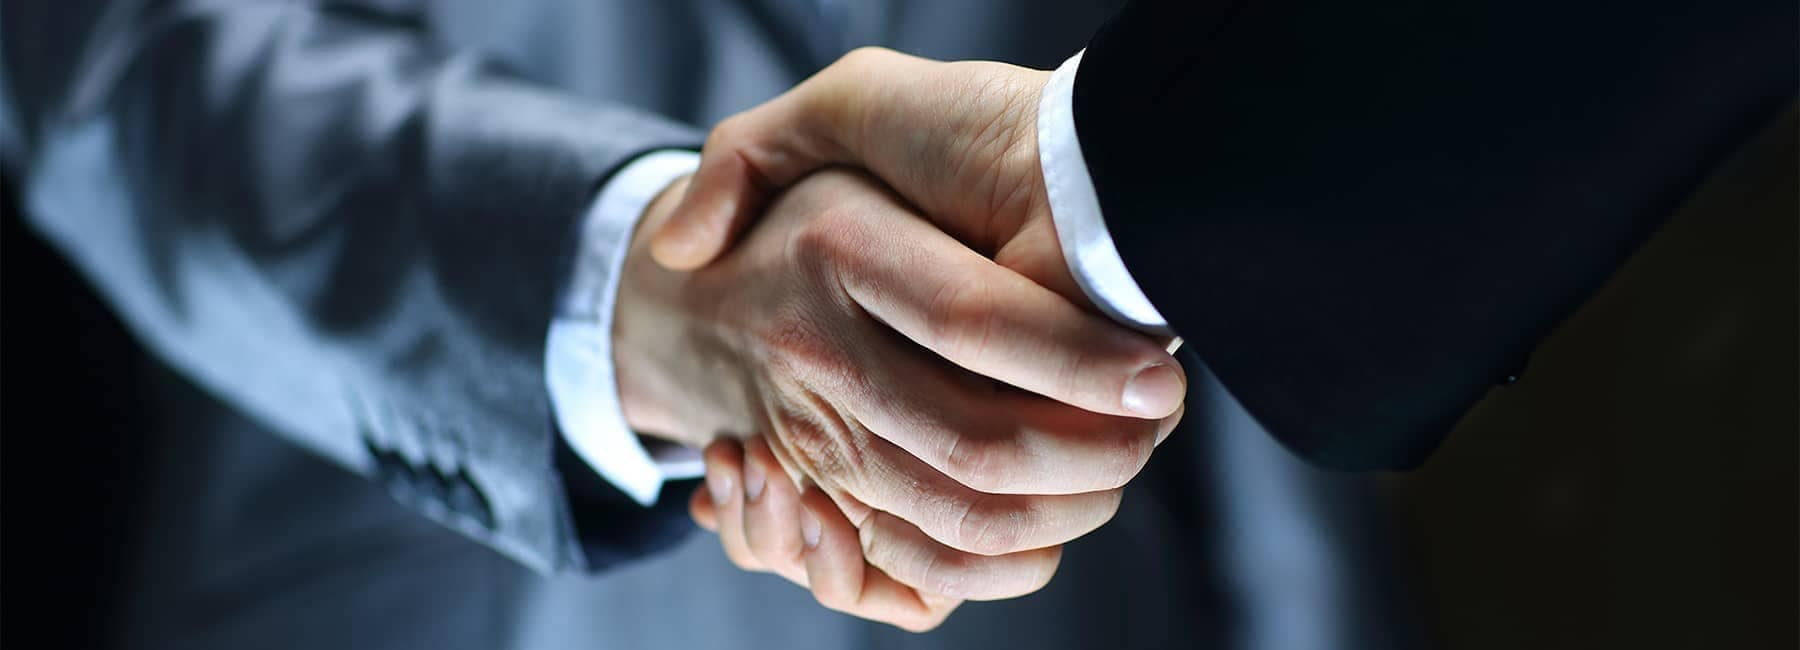 Businessmen in Suits Shaking Hands